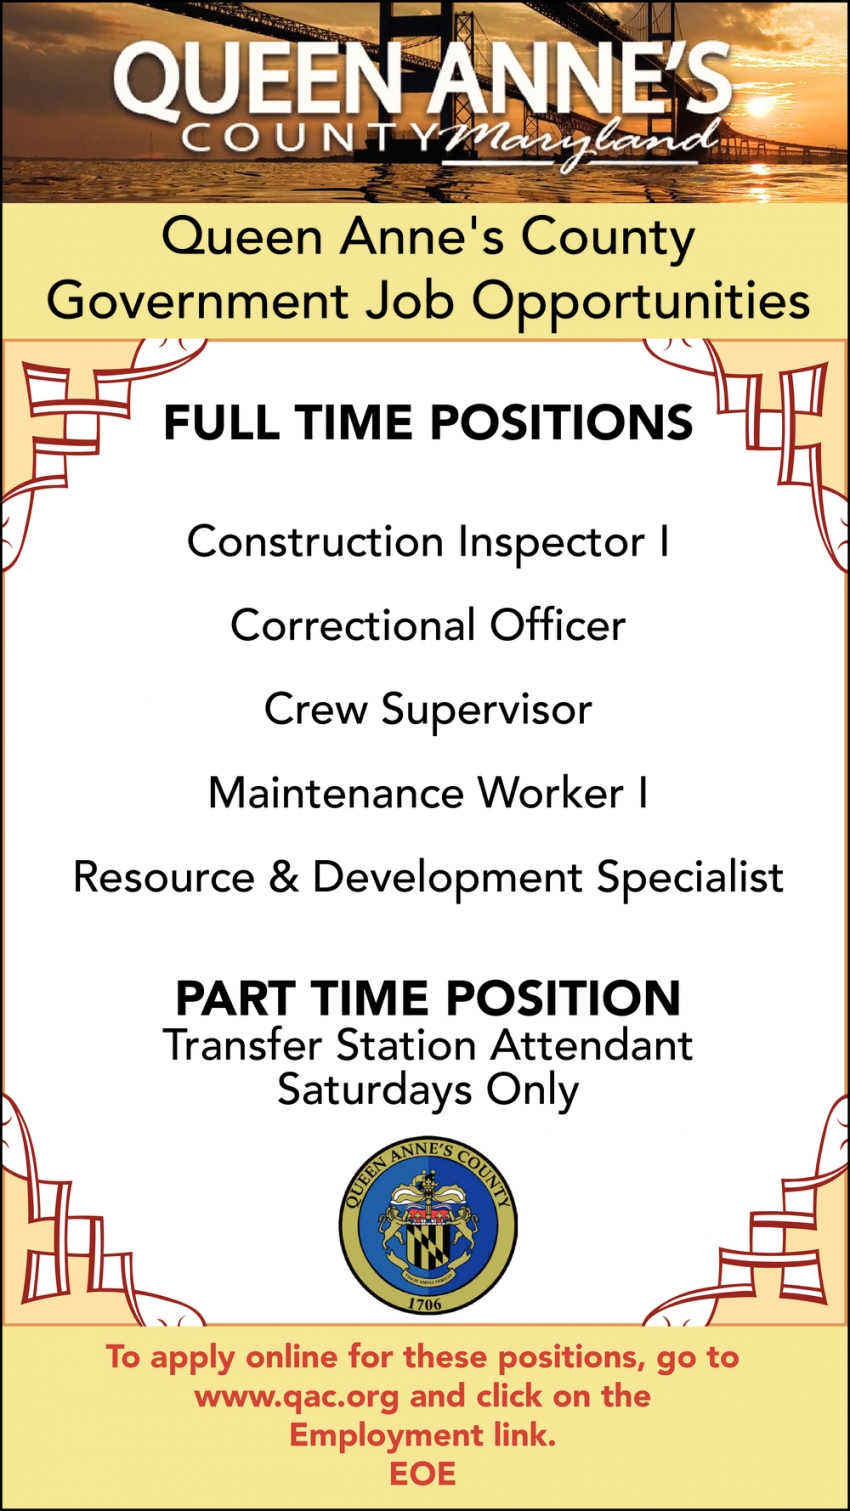 Full Time Positions